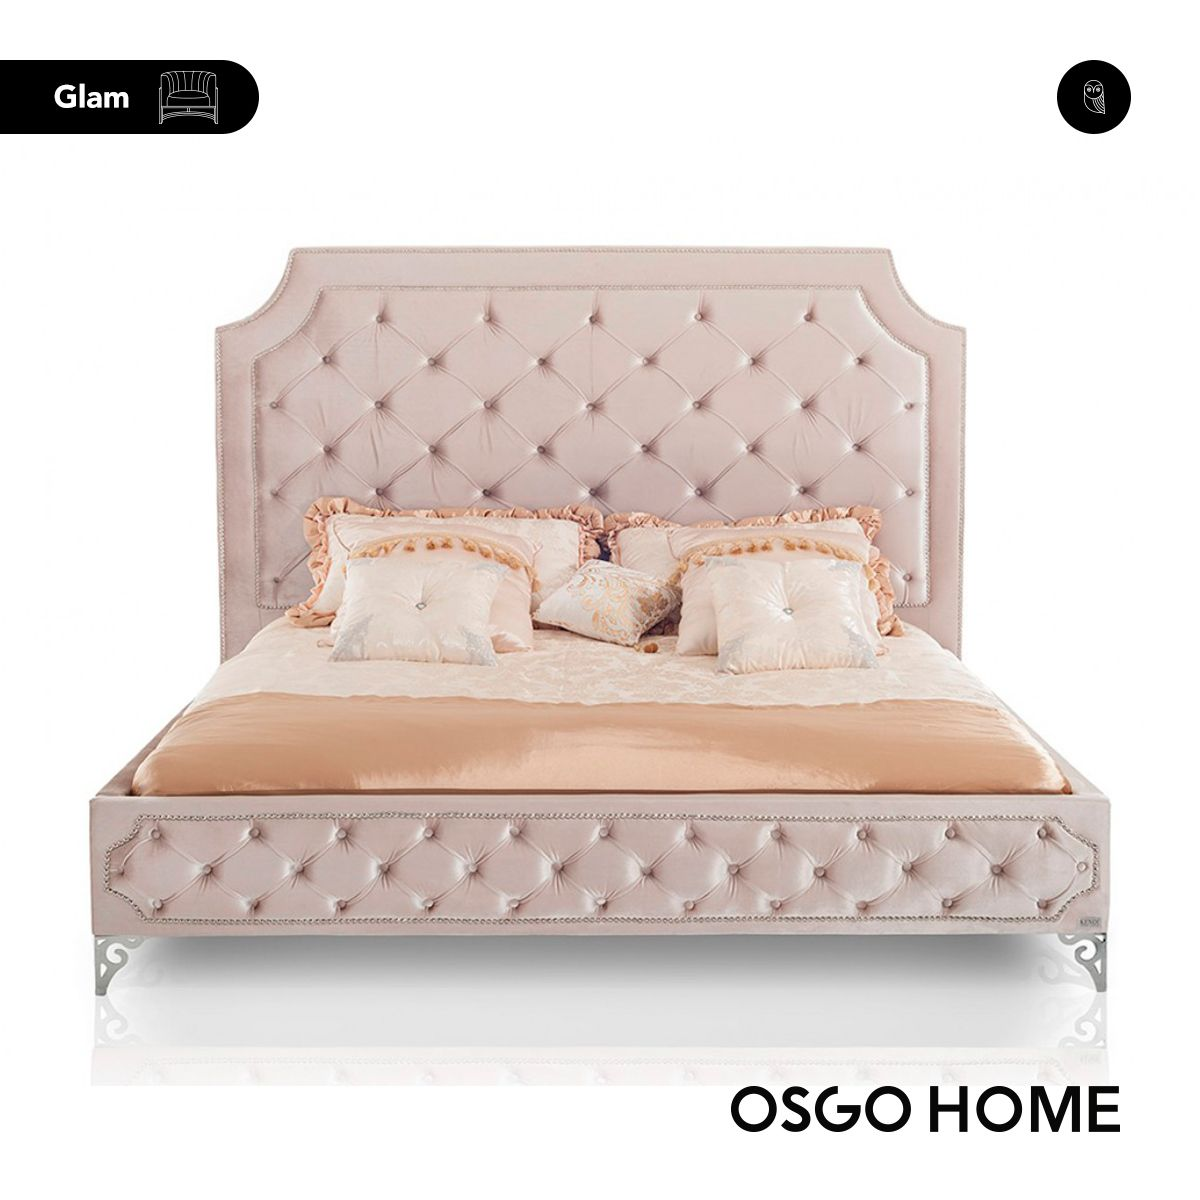 Home Is Where There S One To Love Us Charles Swain In 2020 Home Furnishings Home Decor